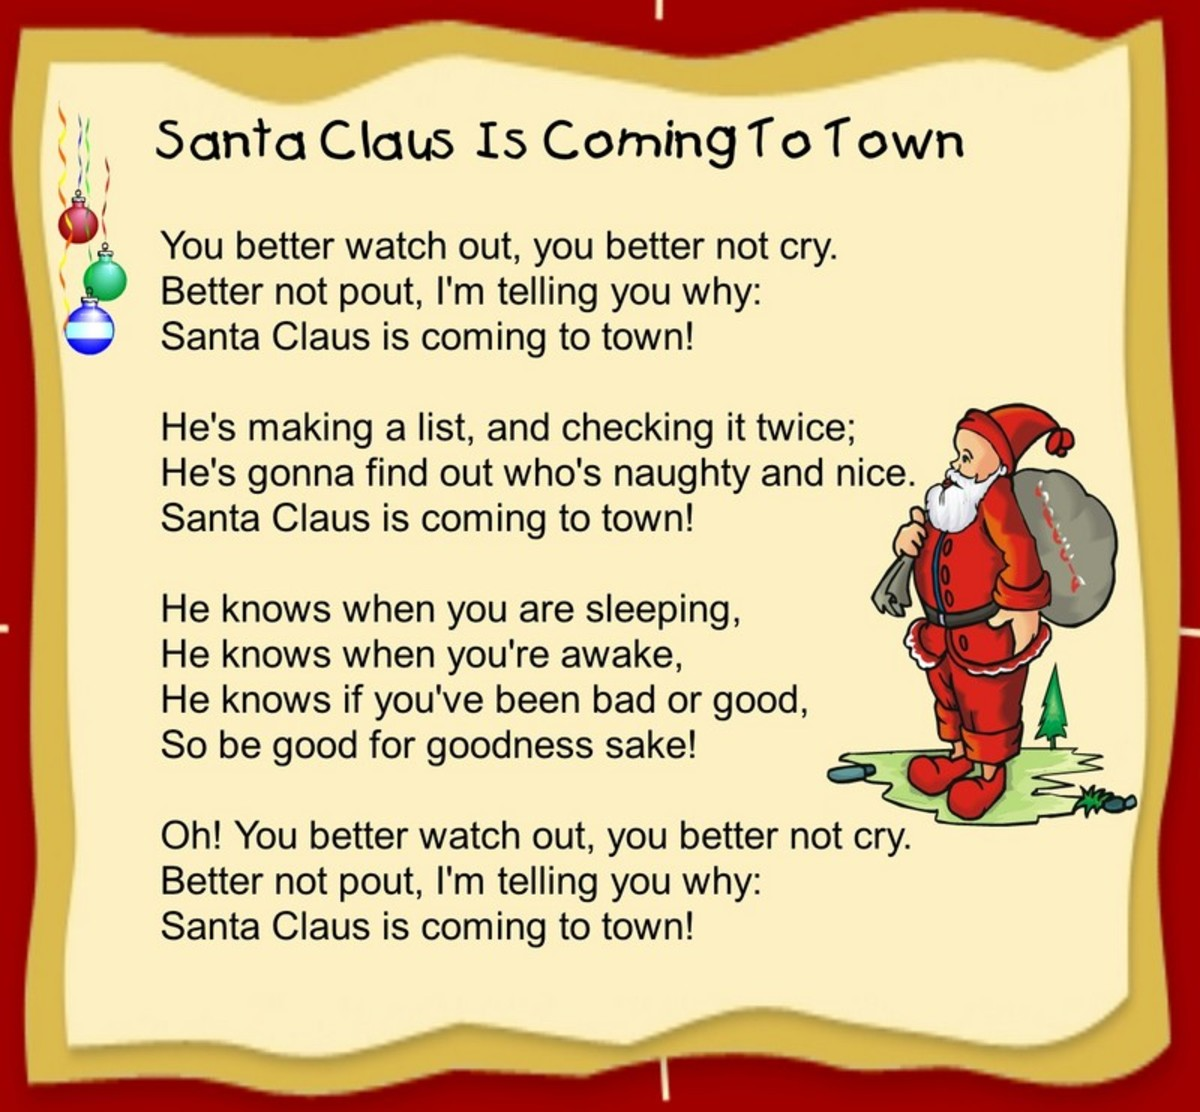 Sant Claus is Coming to Town